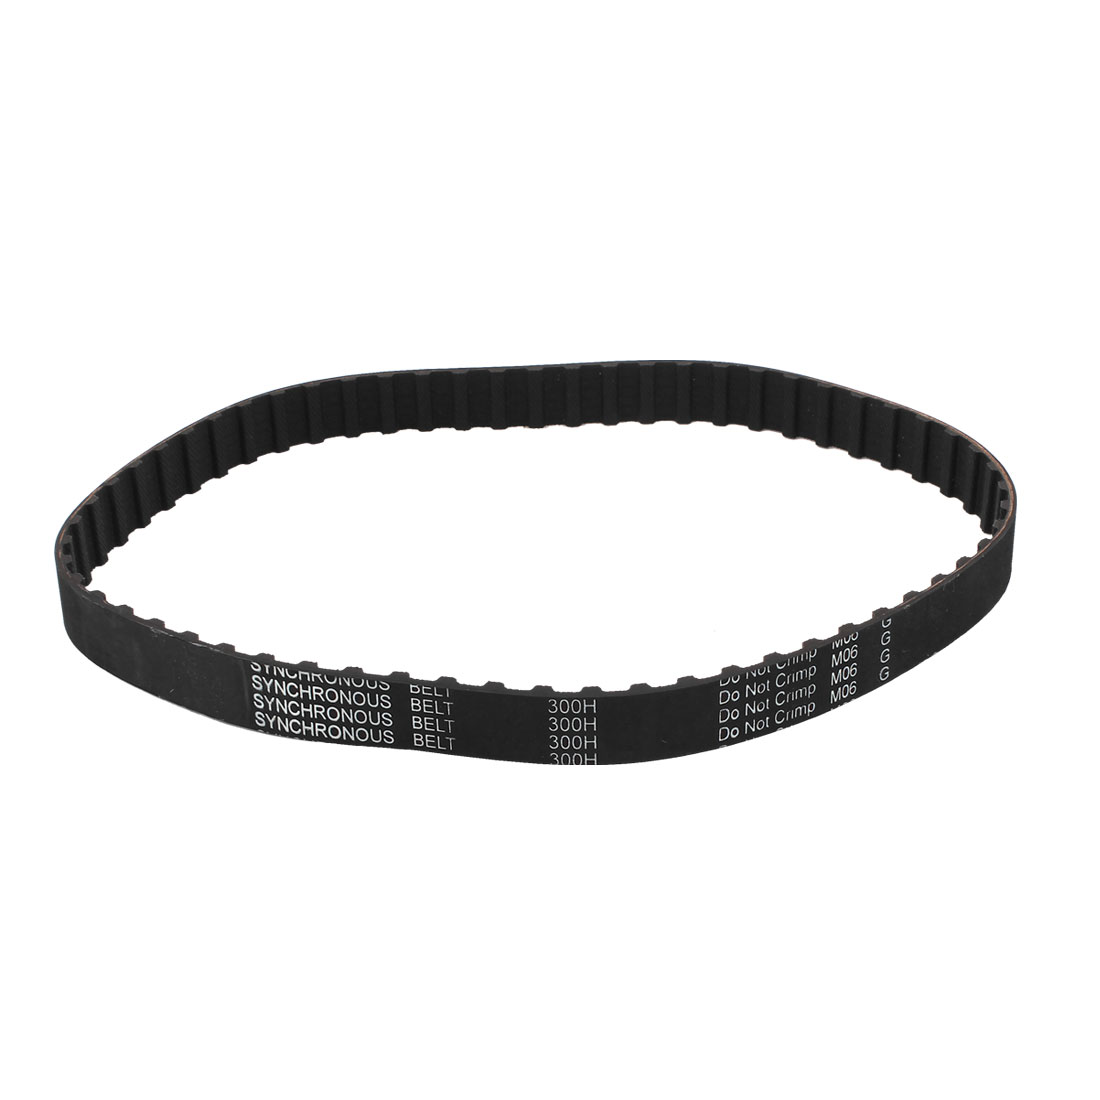 Drying Machine Spare Parts Timing Belt 60 Teeth 19.1mm Width 300H 075